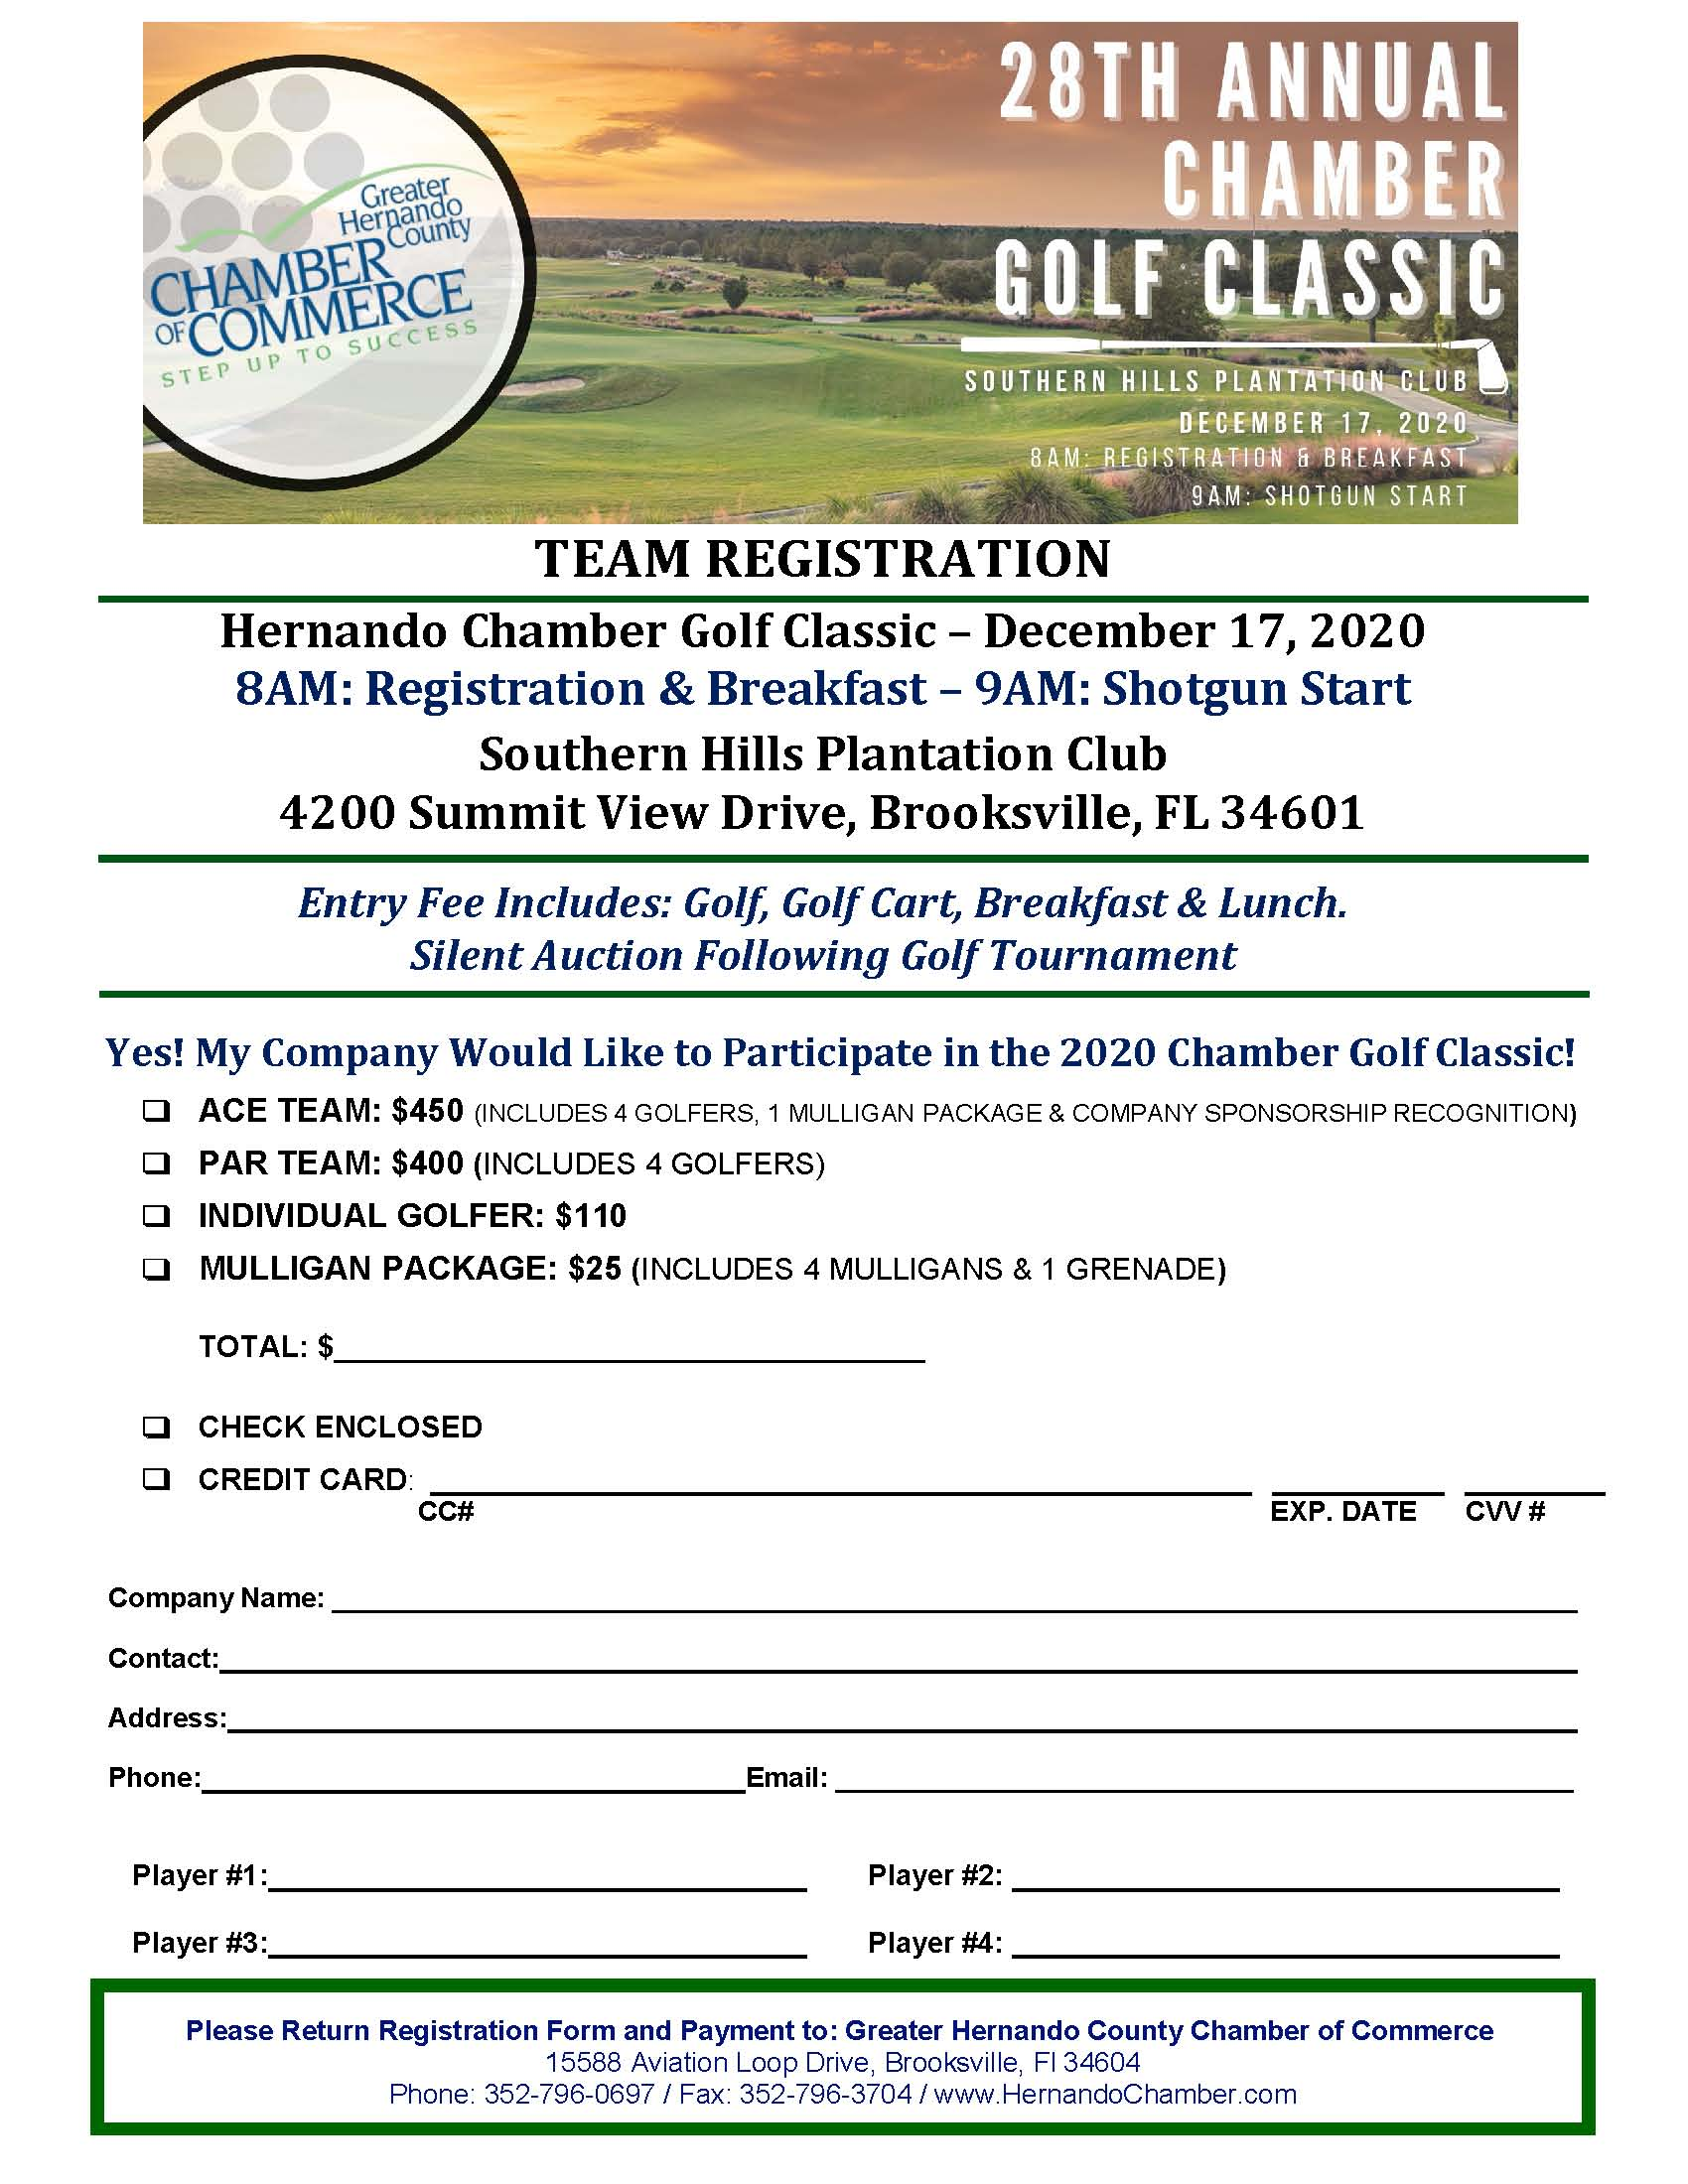 NEW 2020 Chamber Golf Team Registration Form